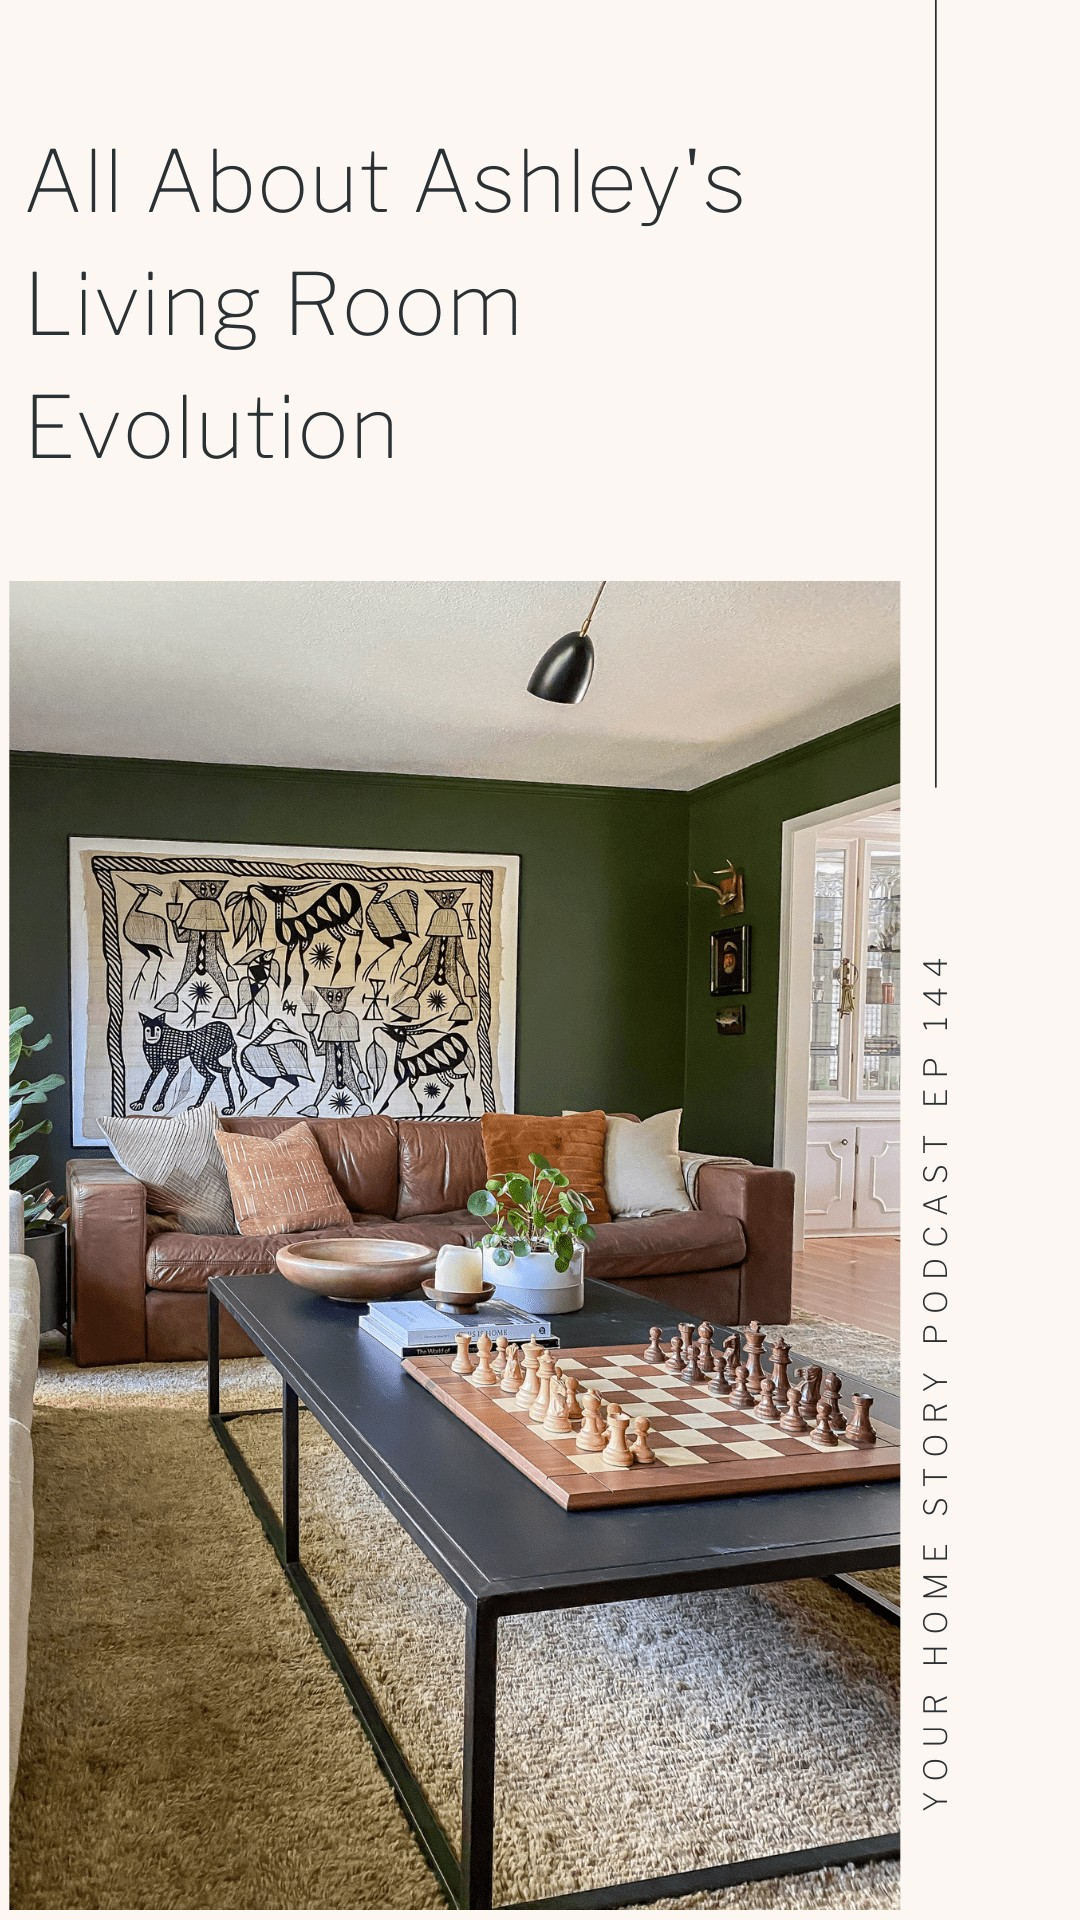 The evolution of the living room